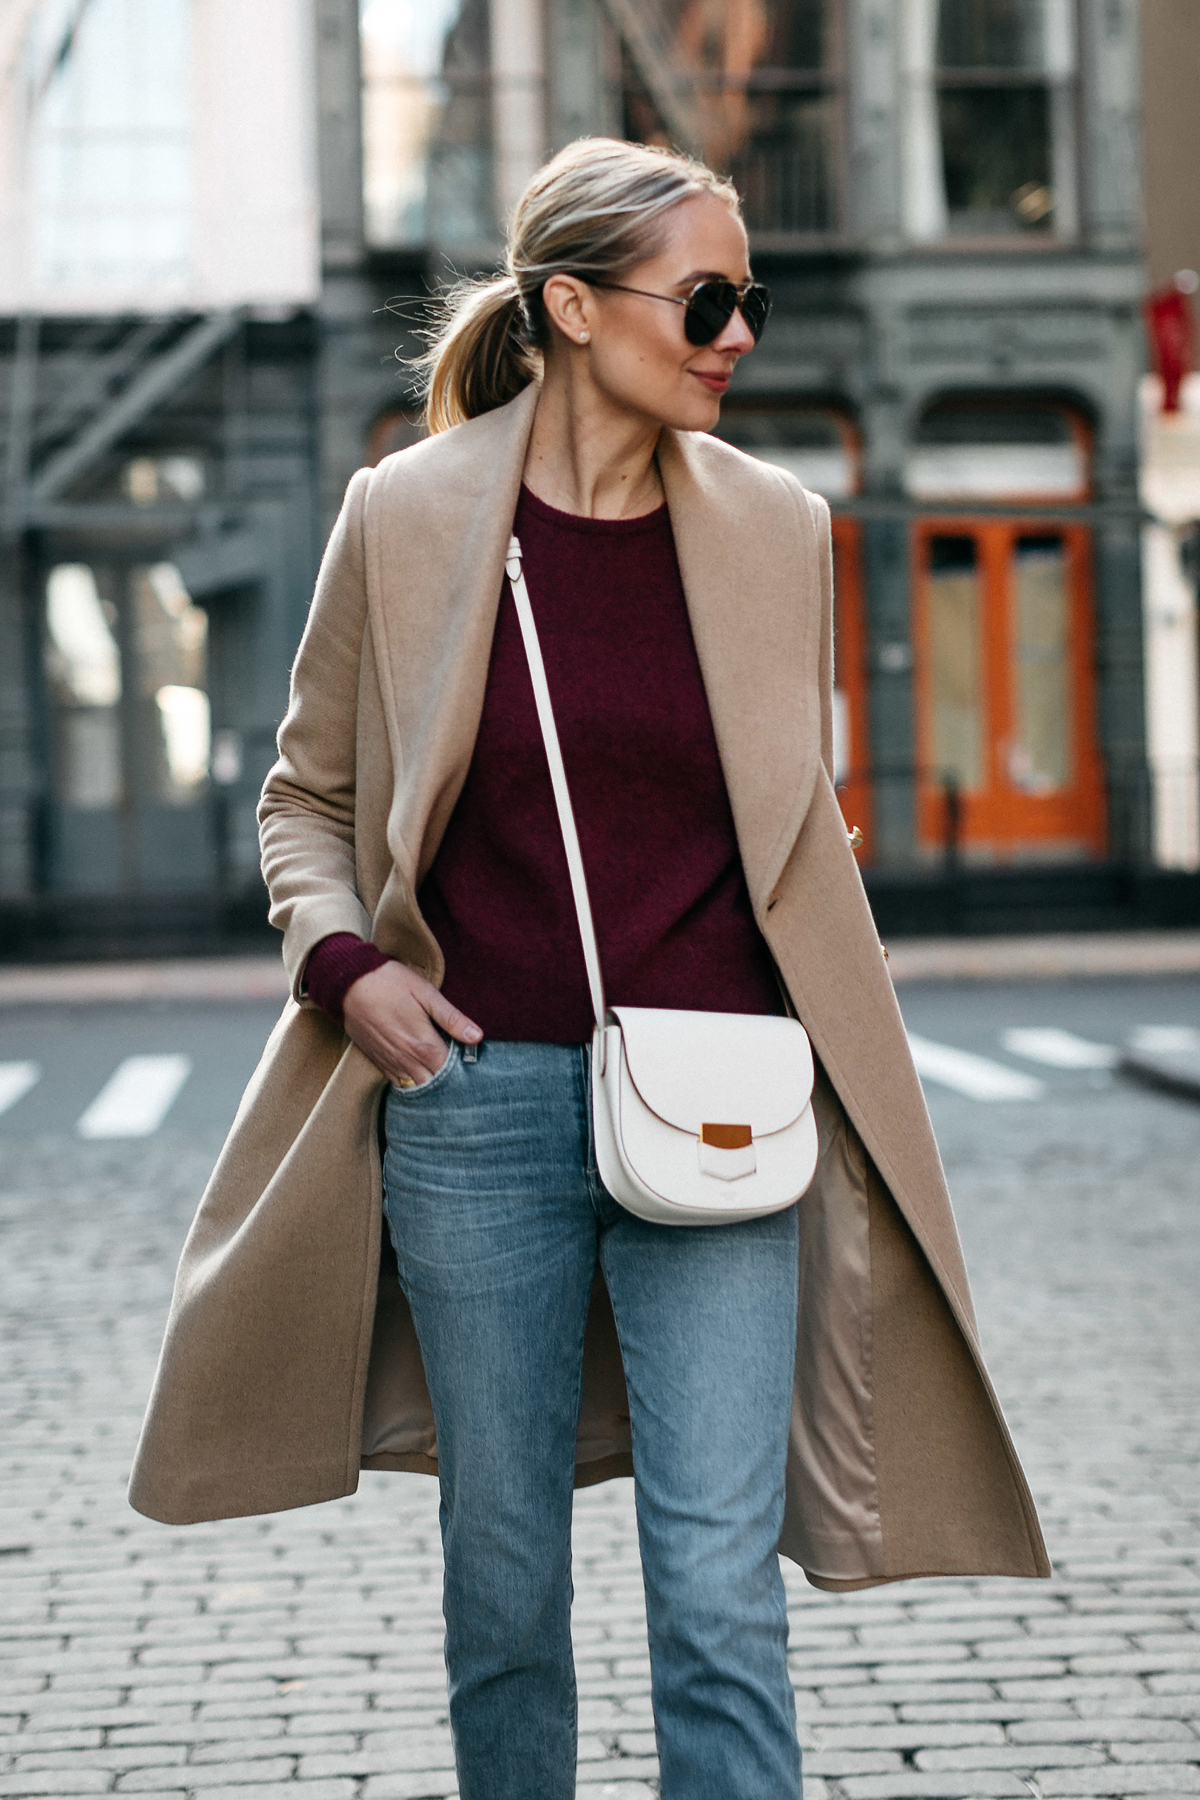 Blonde Woman Wearing Club Monaco Camel Coat Burgundy Sweater Denim Jeans Celine White Trotteur Handbag Fashion Jackson Dallas Blogger Fashion Blogger Street Style New York Fashion Week